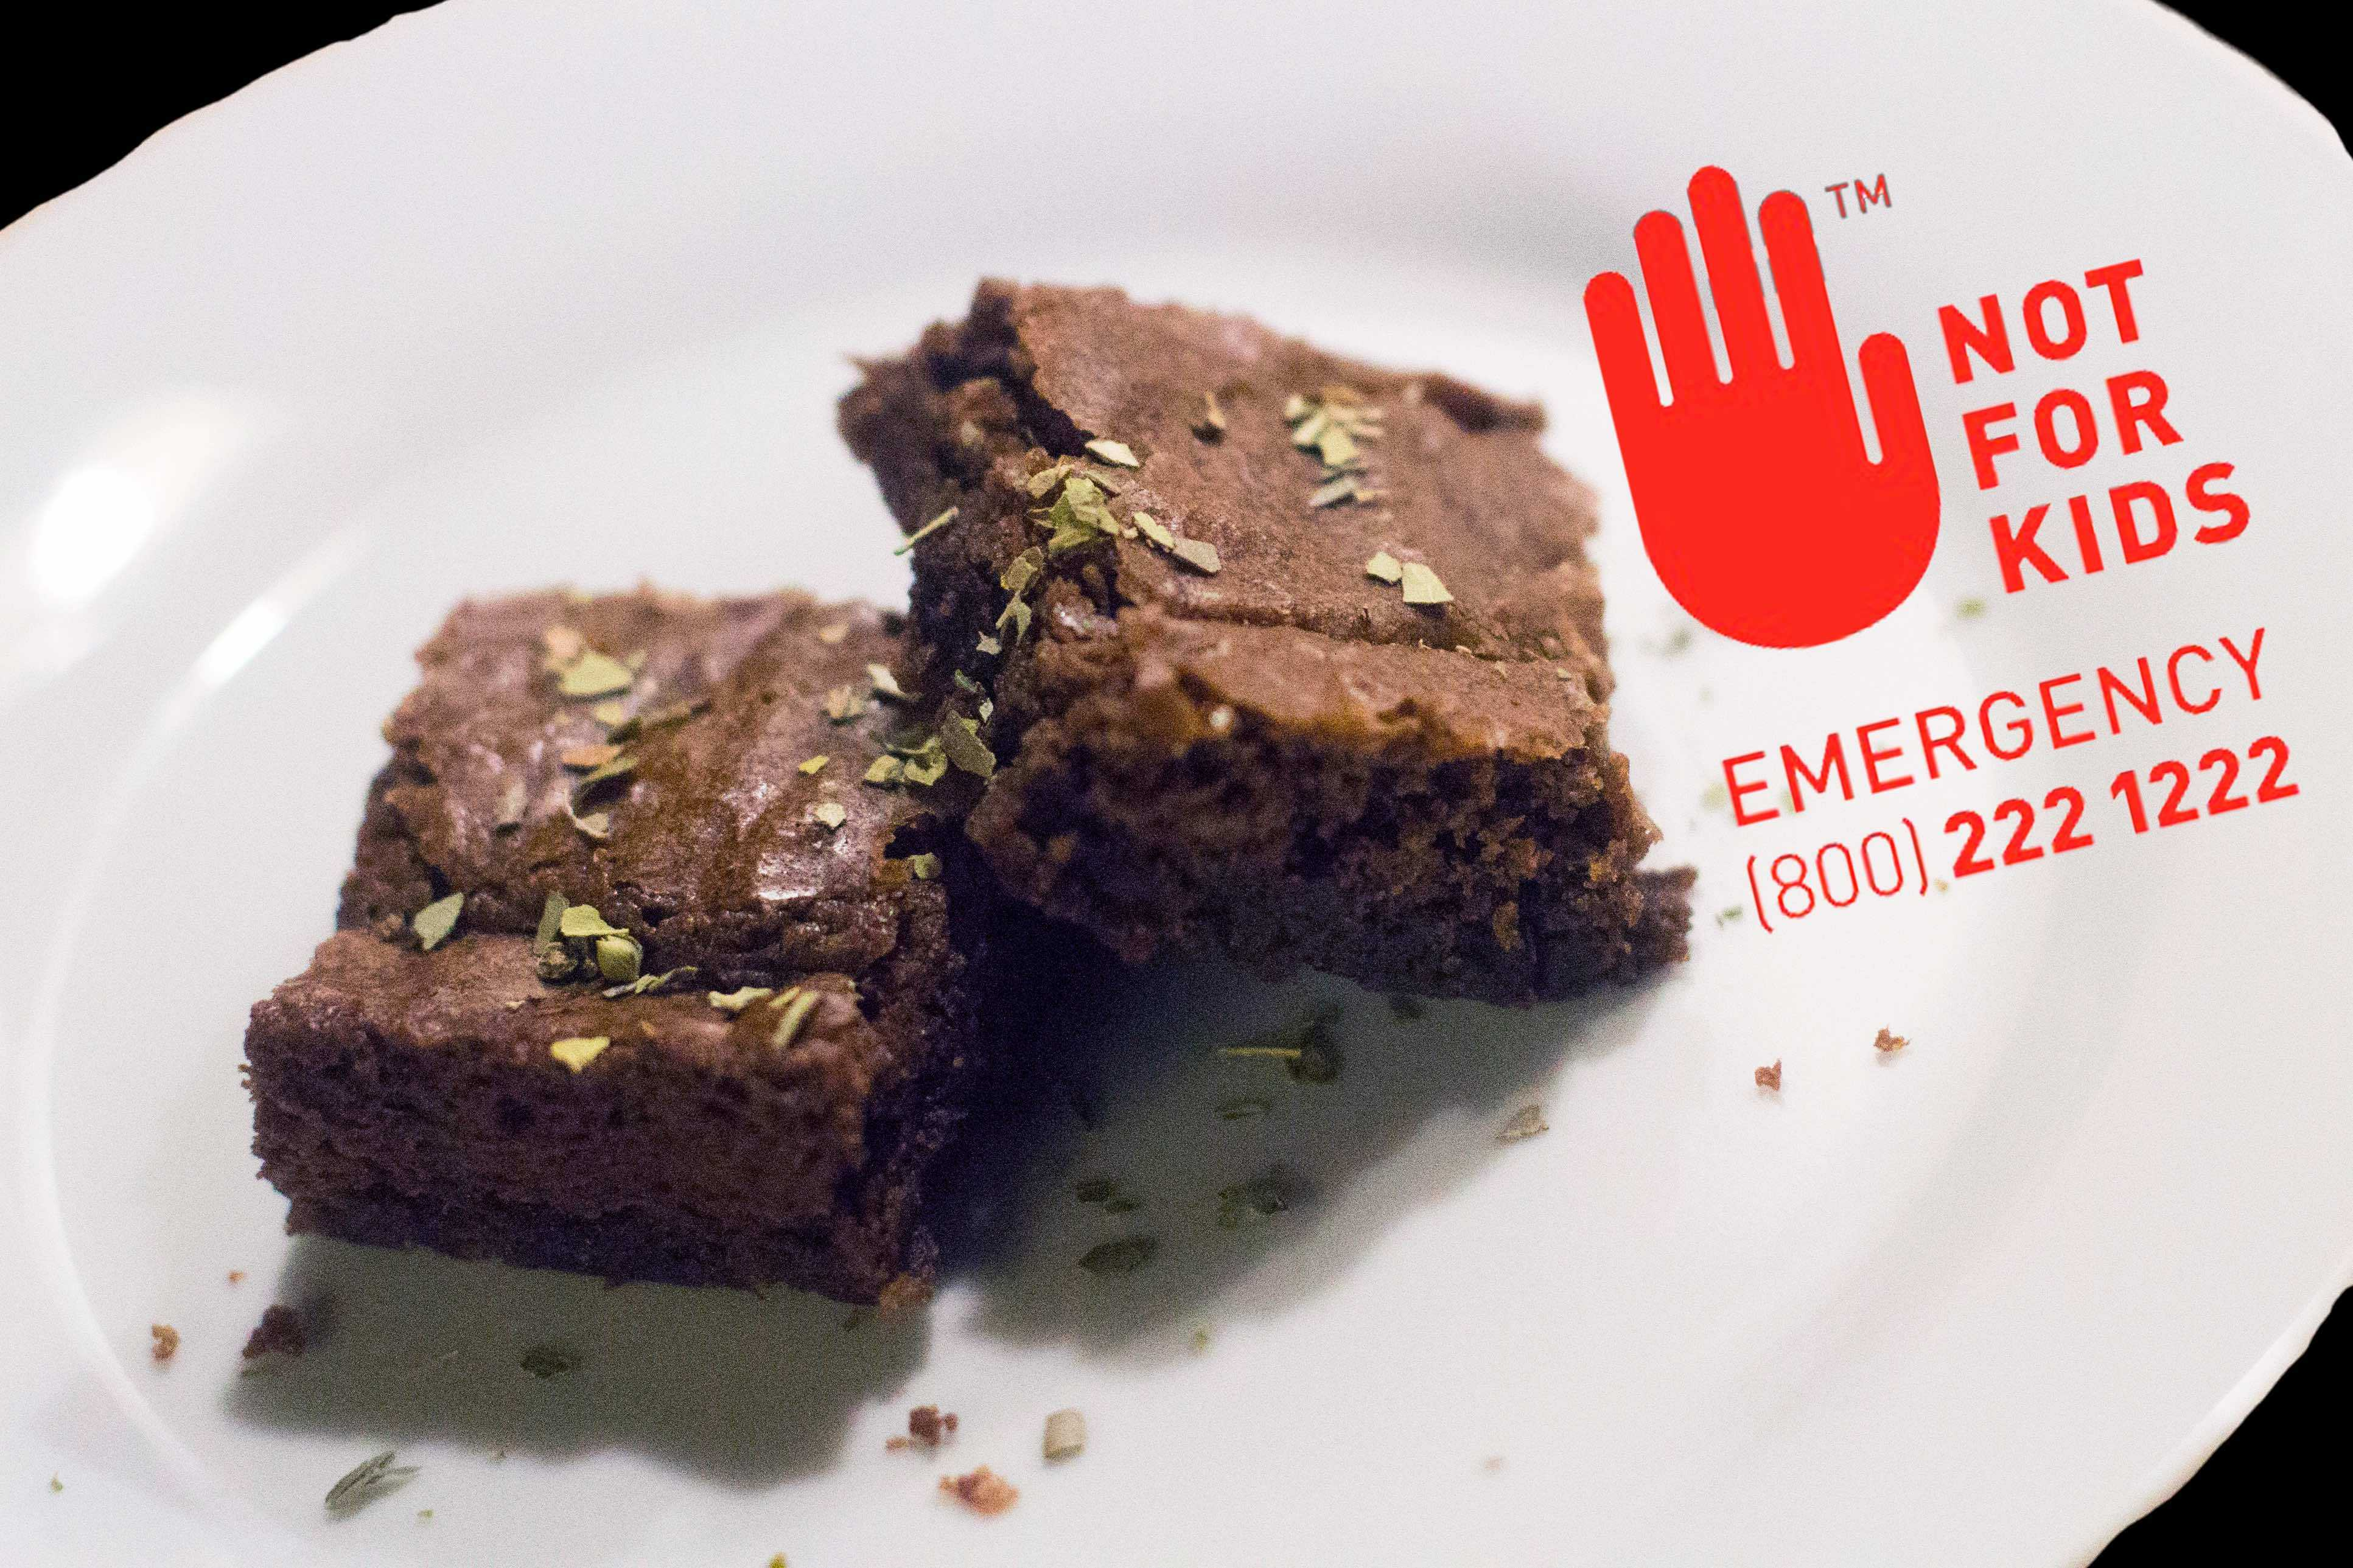 Pot brownies (pictured here) and other edibles must now have